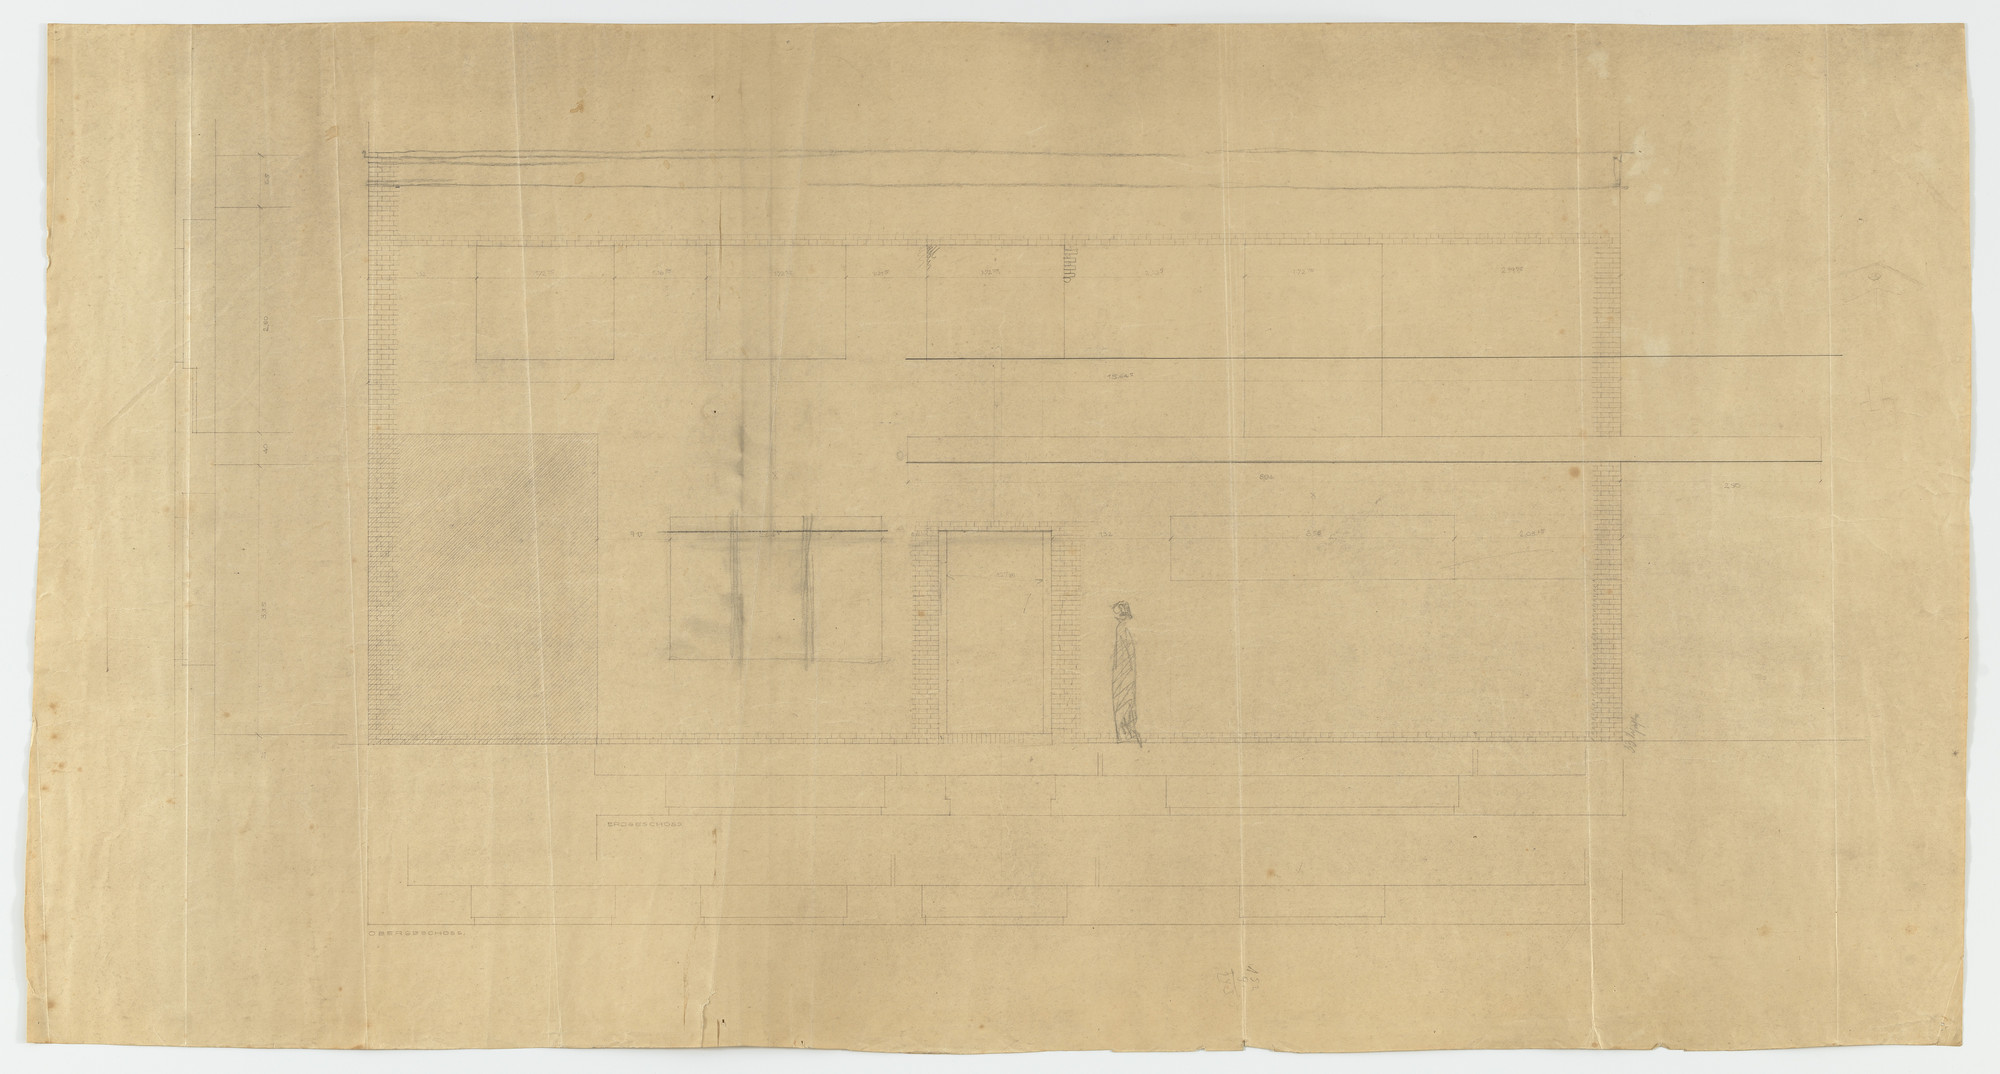 Ludwig Mies van der Rohe. Wolf House, Gubin, Poland (Elevation, plans, section. Ground, second floor and right half of east side). 1925-1927